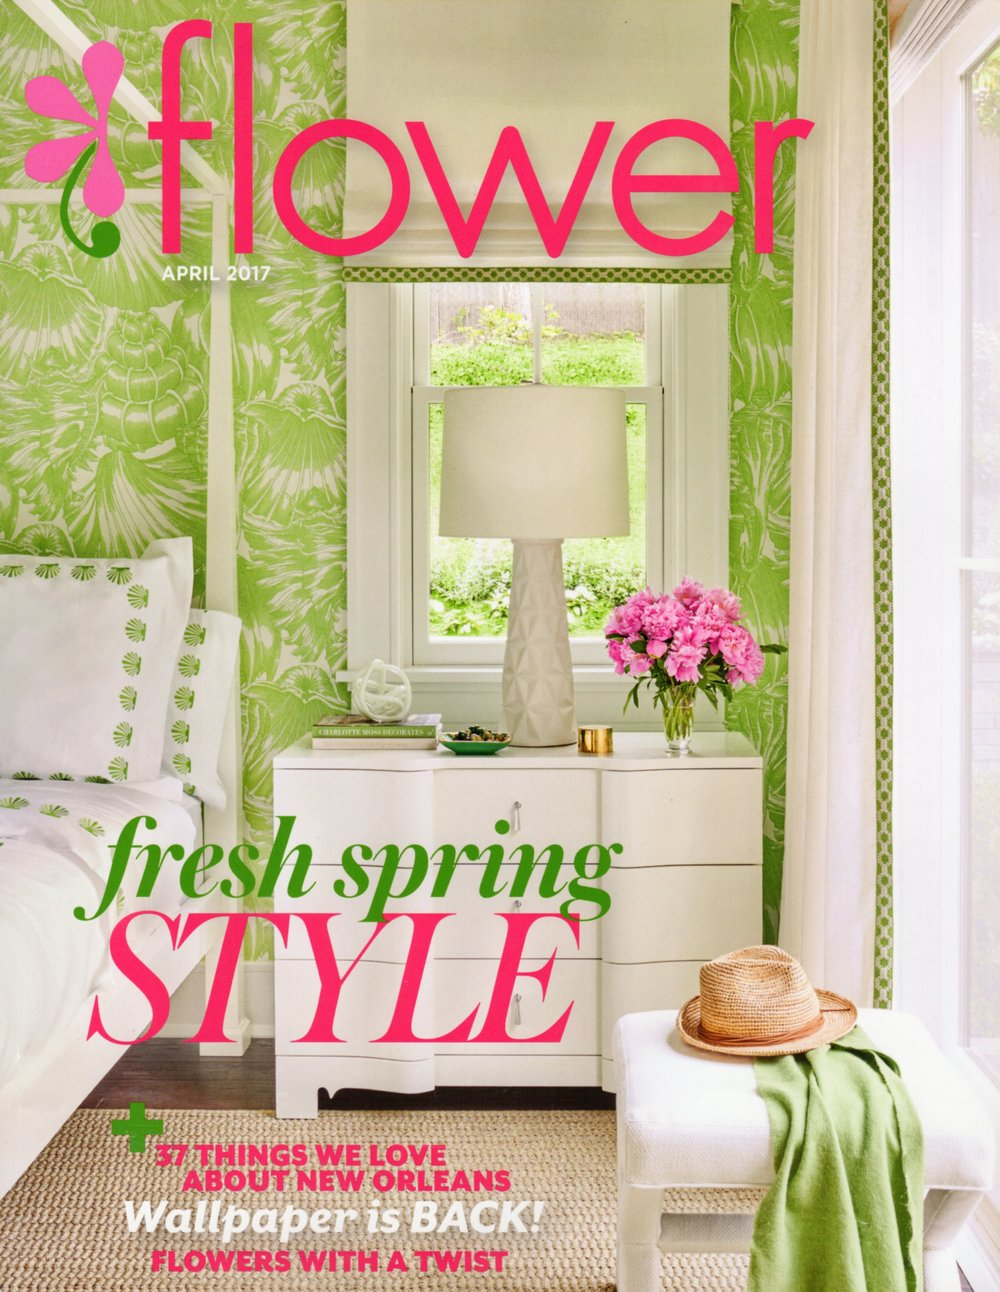 Flower Magazine April 2017 cover.jpg